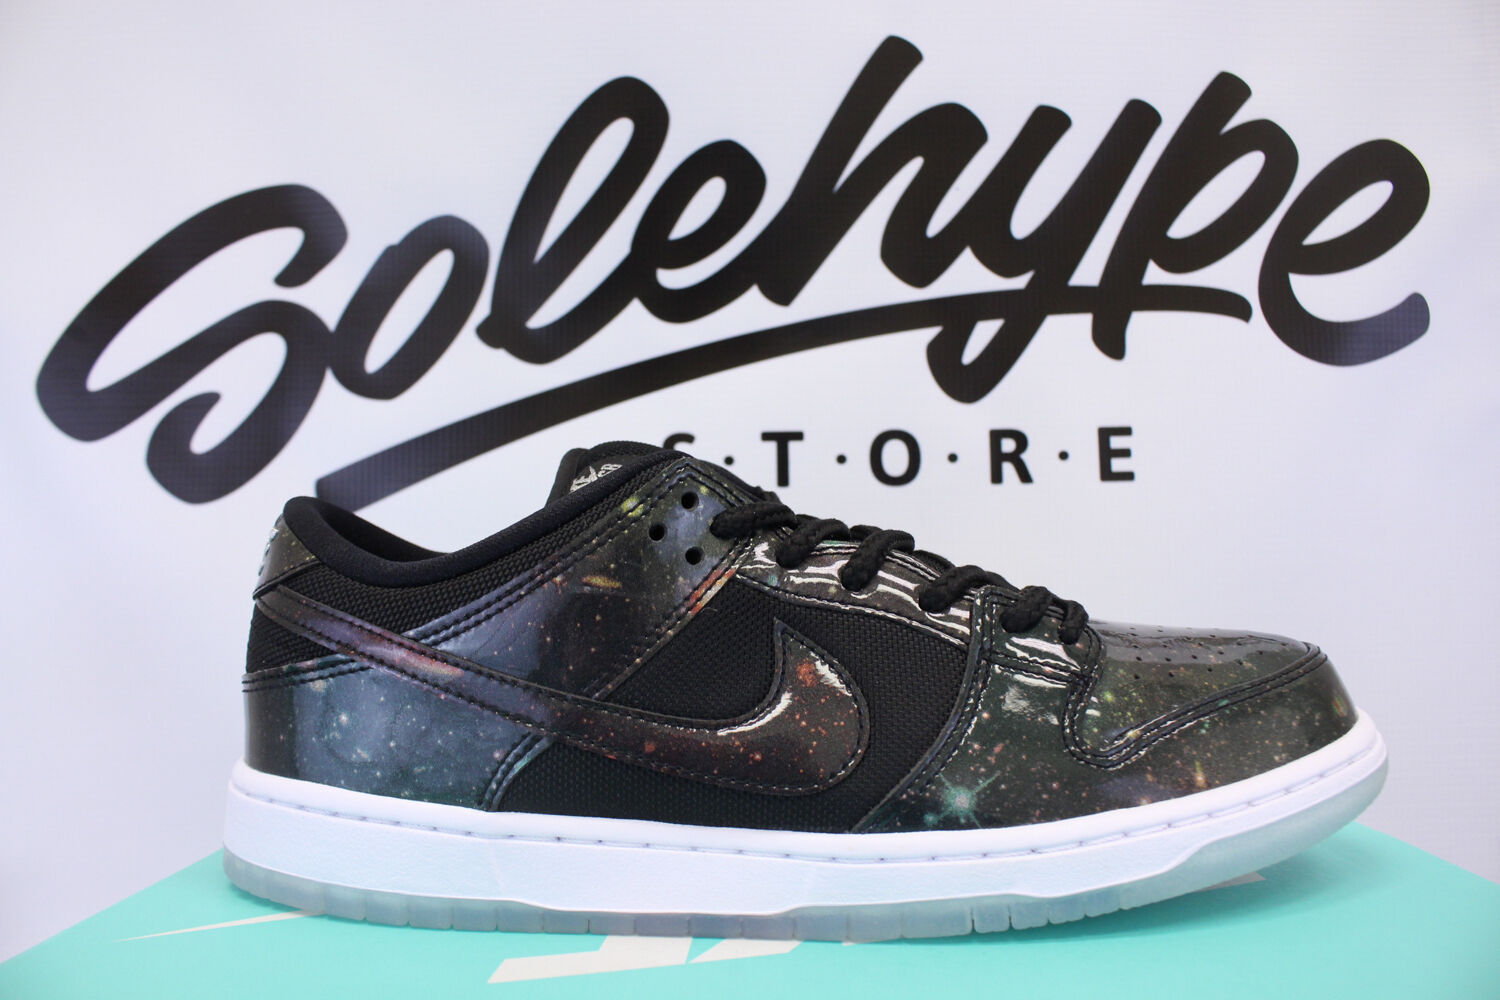 NIKE SB DUNK LOW TRD 420 QS QUICKSTRIKE GALAXY SPACE JAM BLK 883232 001 SZ 6